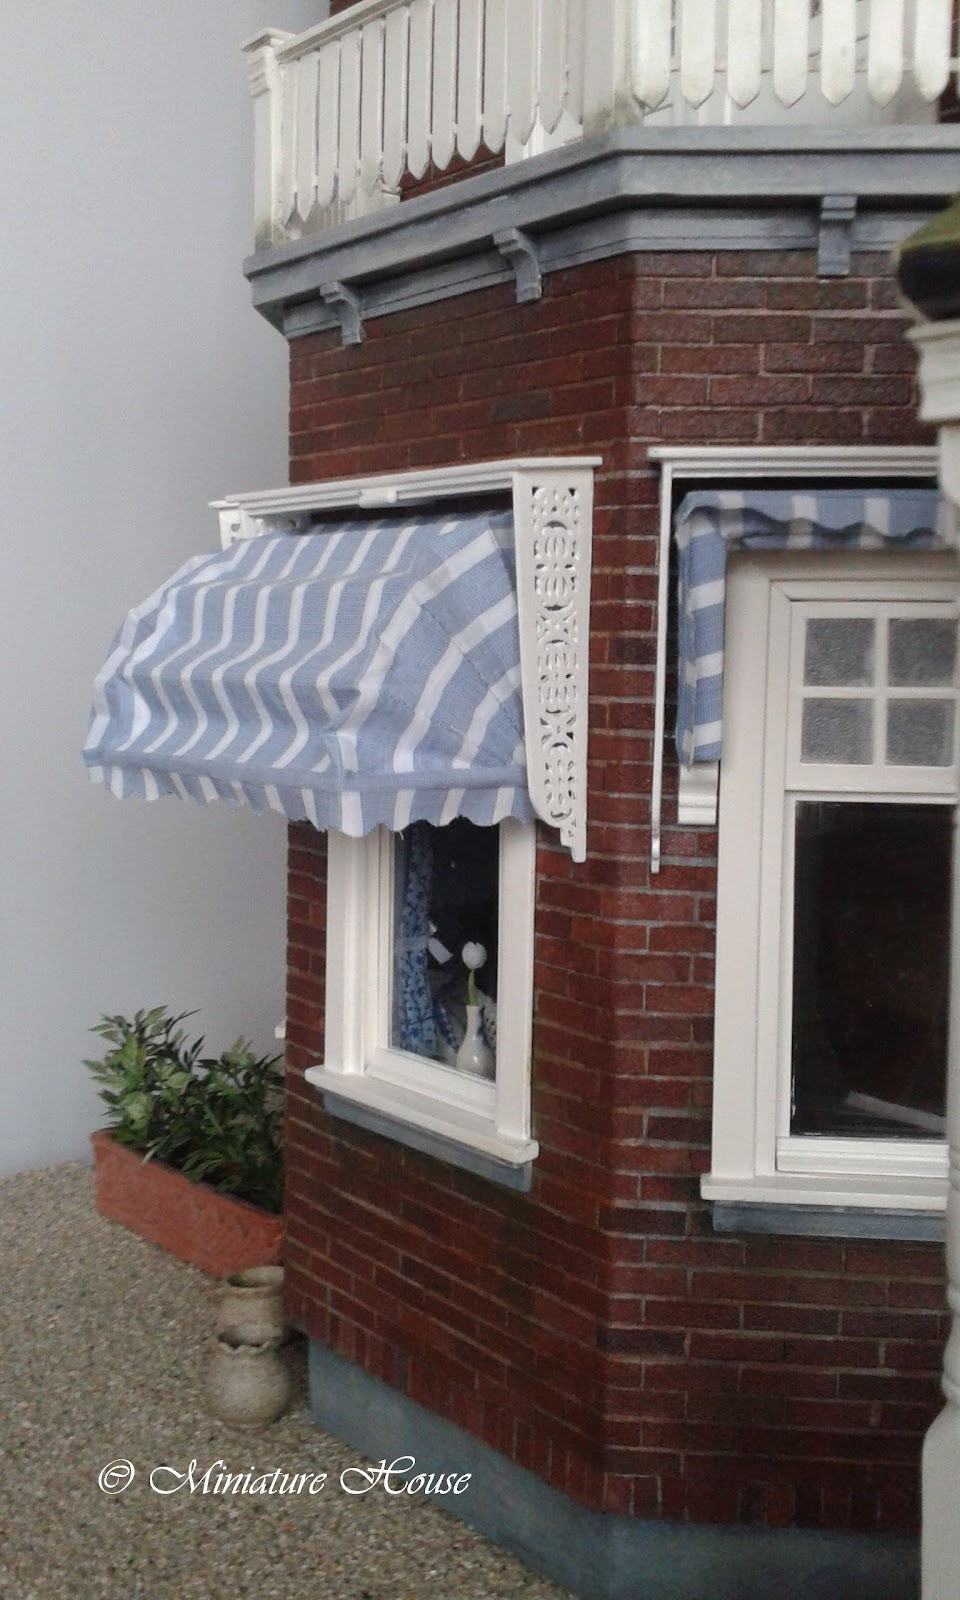 Miniature House Making Blinds